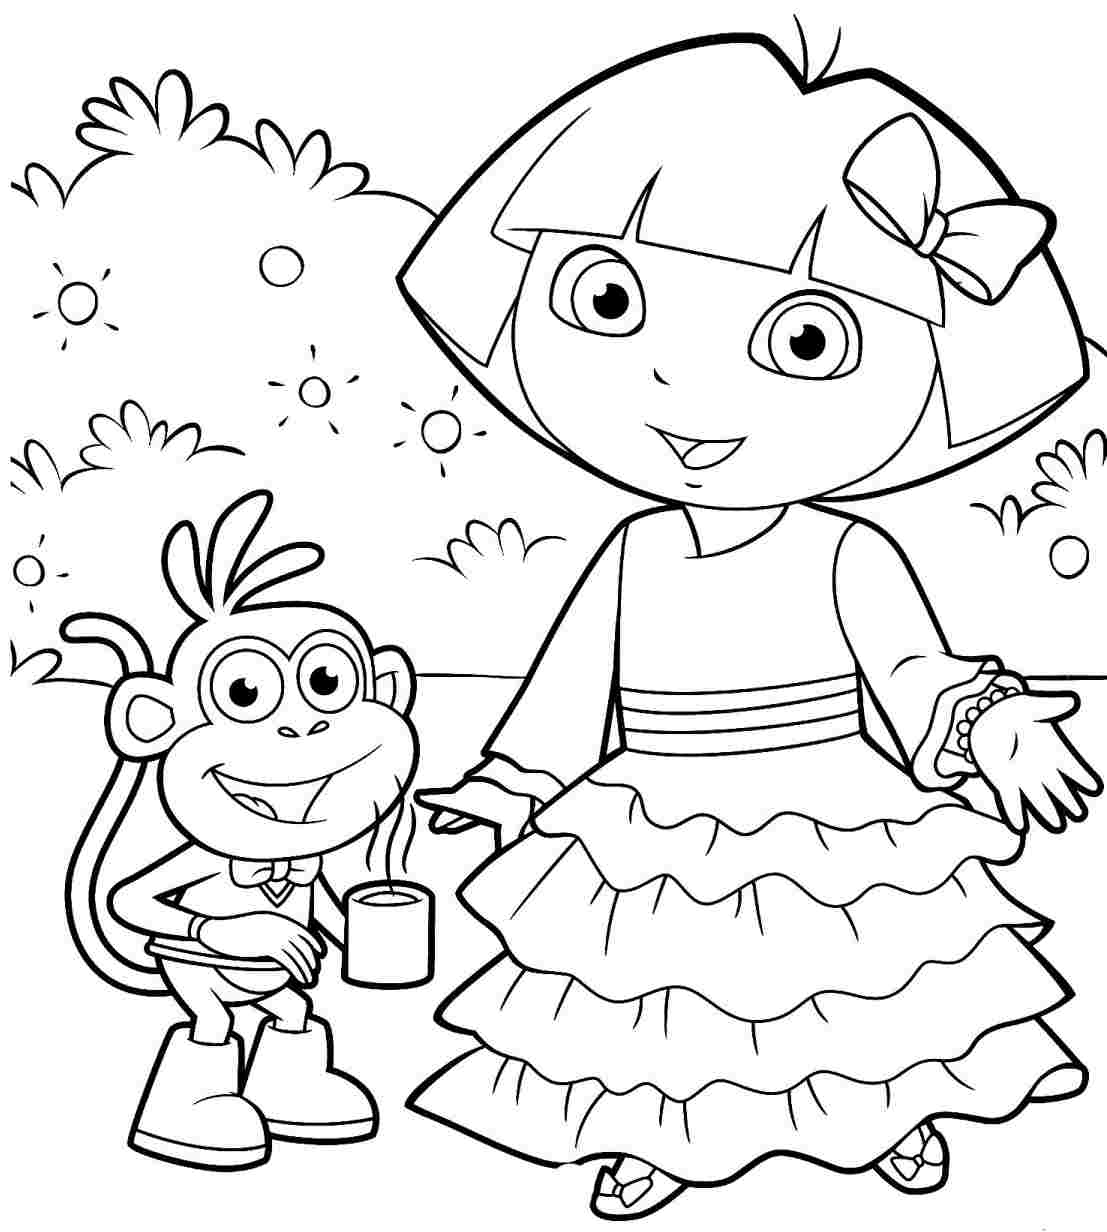 dora coloring pictures dora drawing pictures at getdrawings free download dora pictures coloring